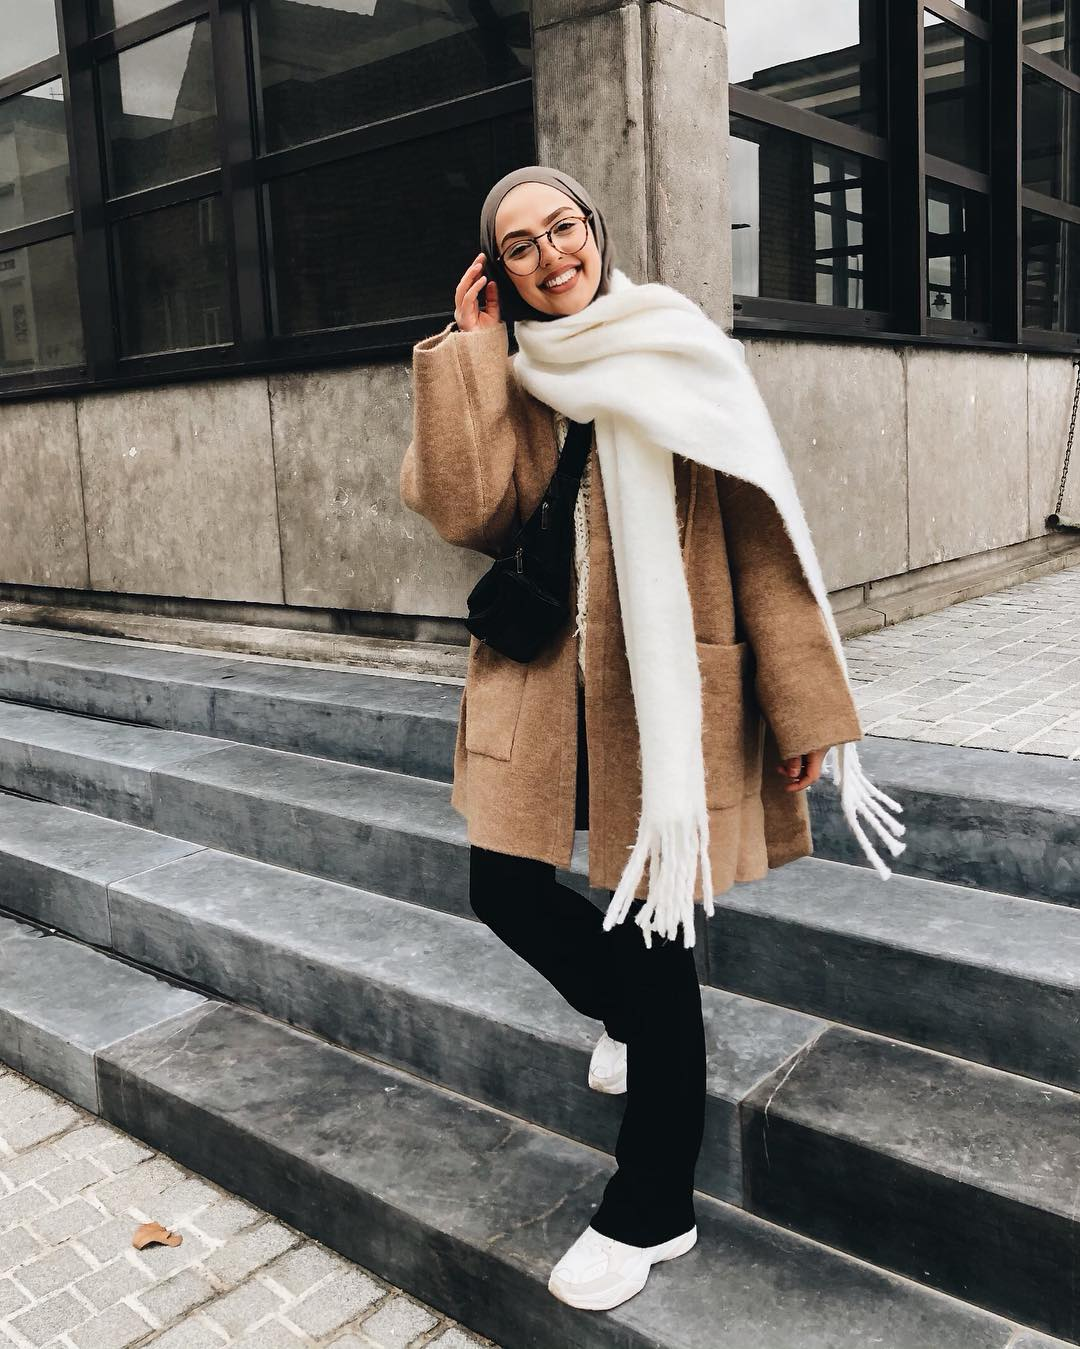 samia fashion blogger